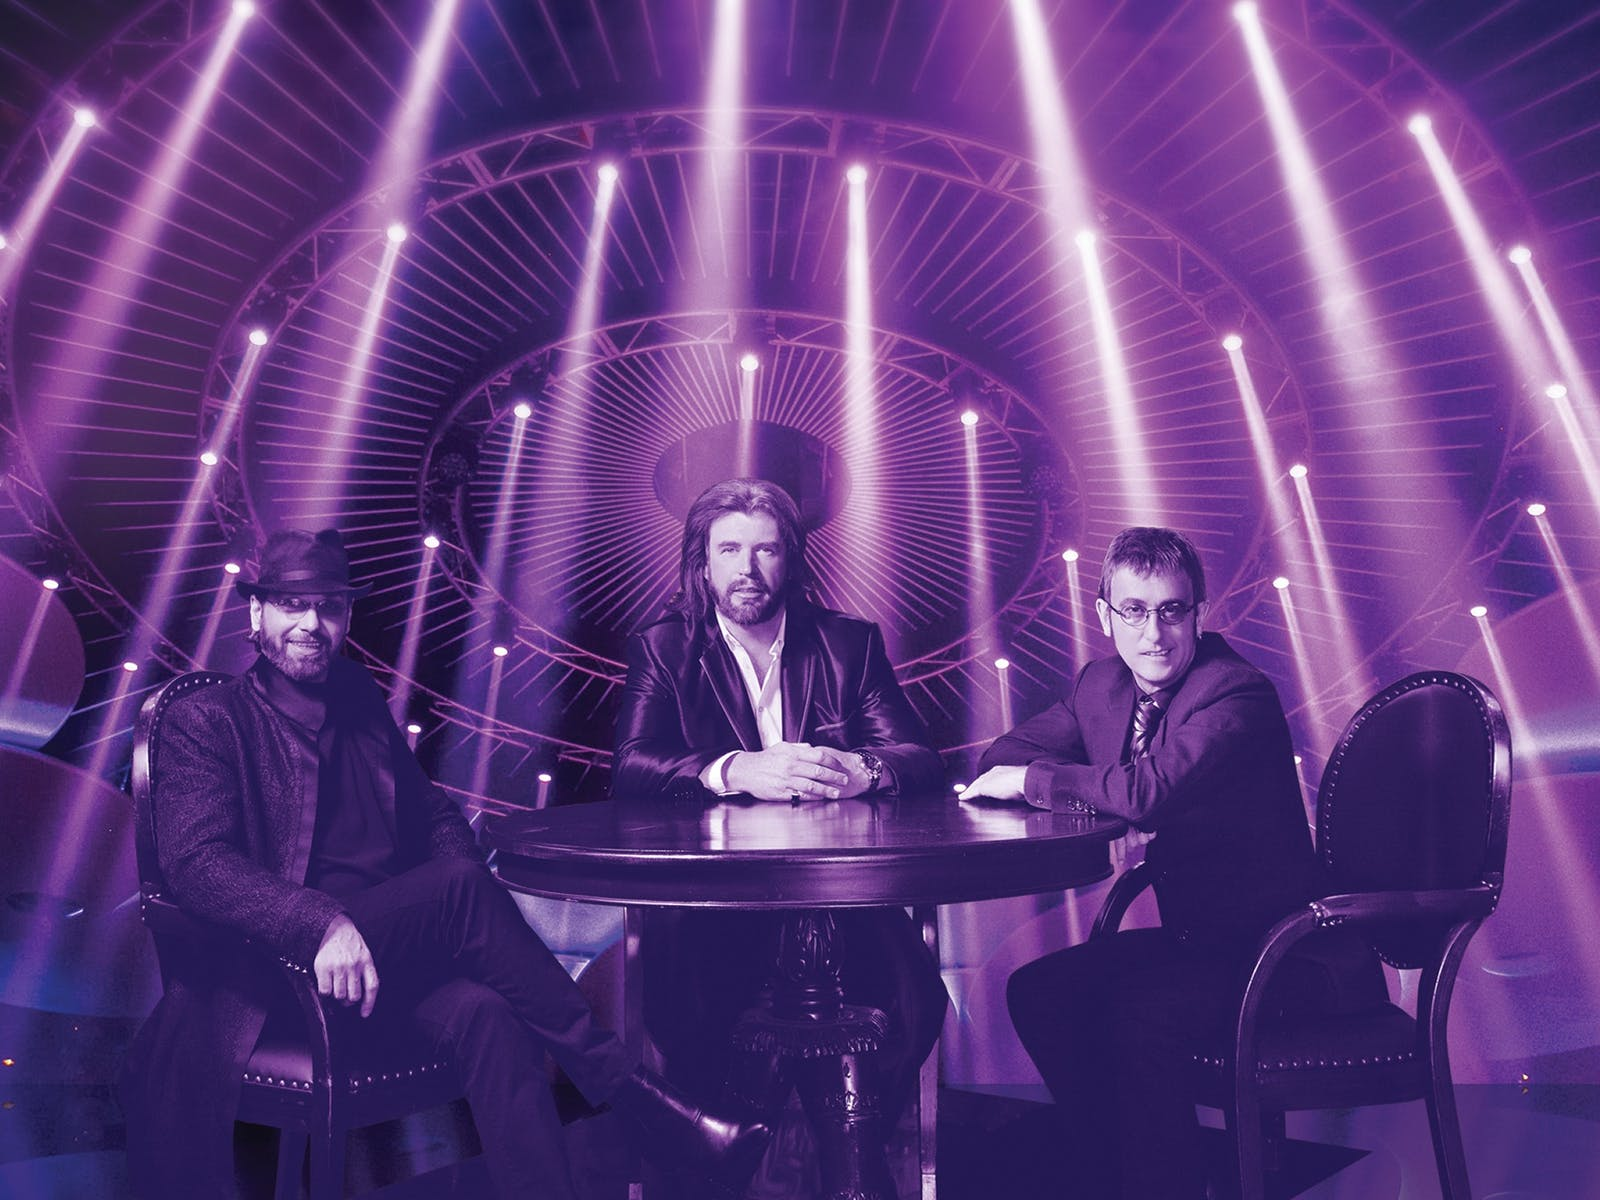 Image for The Australian Bee Gees Show - 25th Anniversary Tour - Thirroul